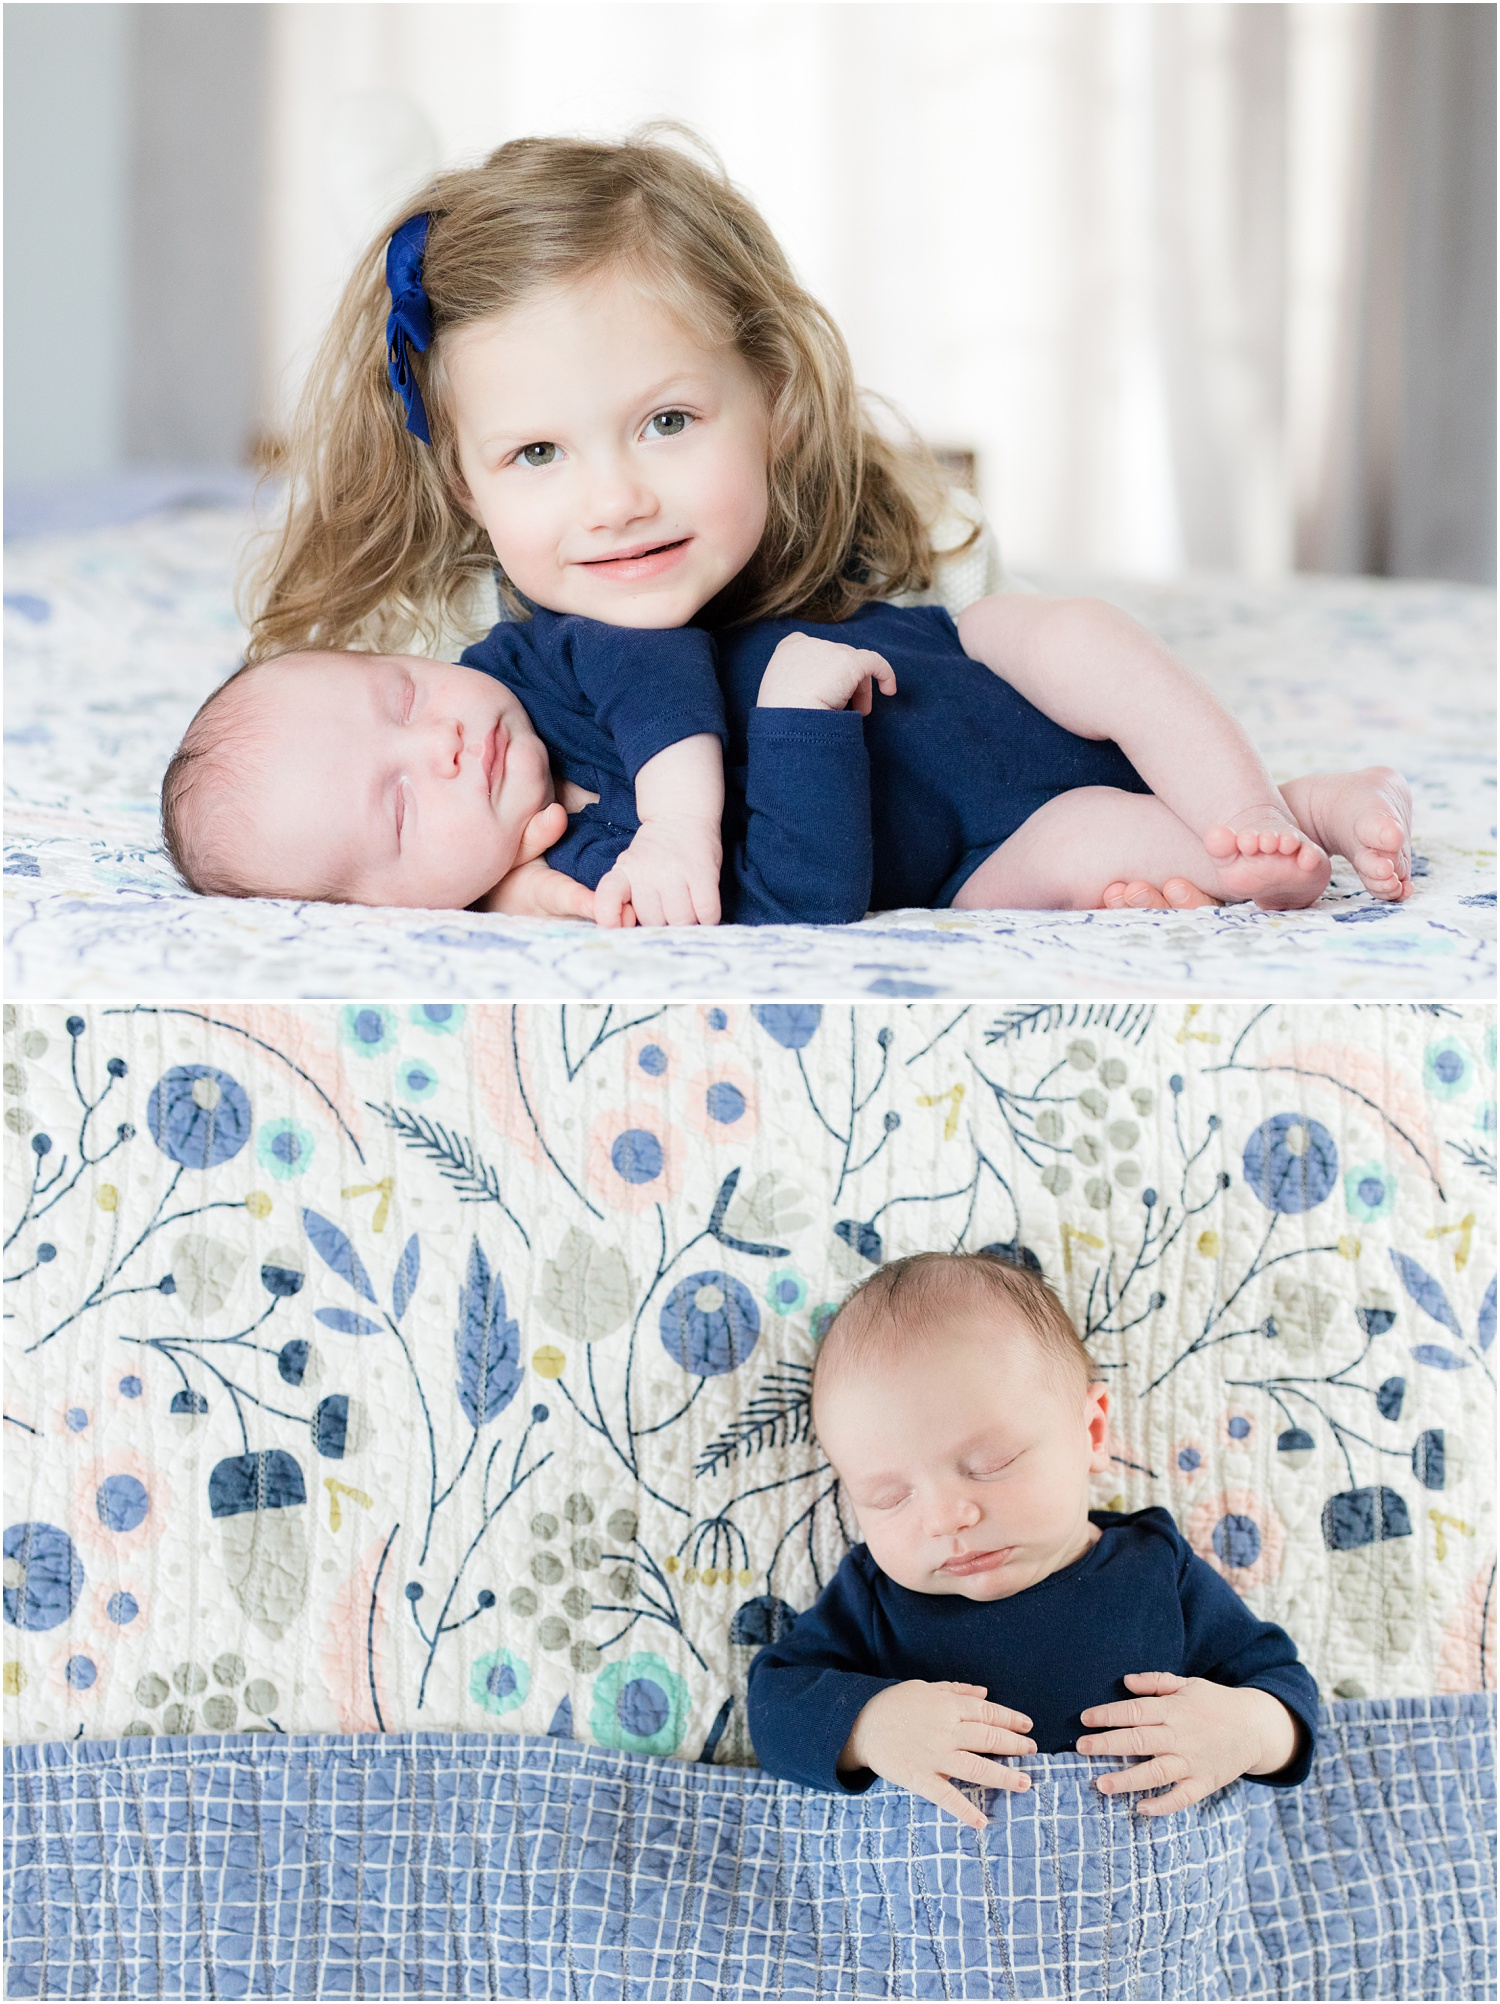 3 year old girl with newborn baby brother on the bed at home in Long Valley, NJ.